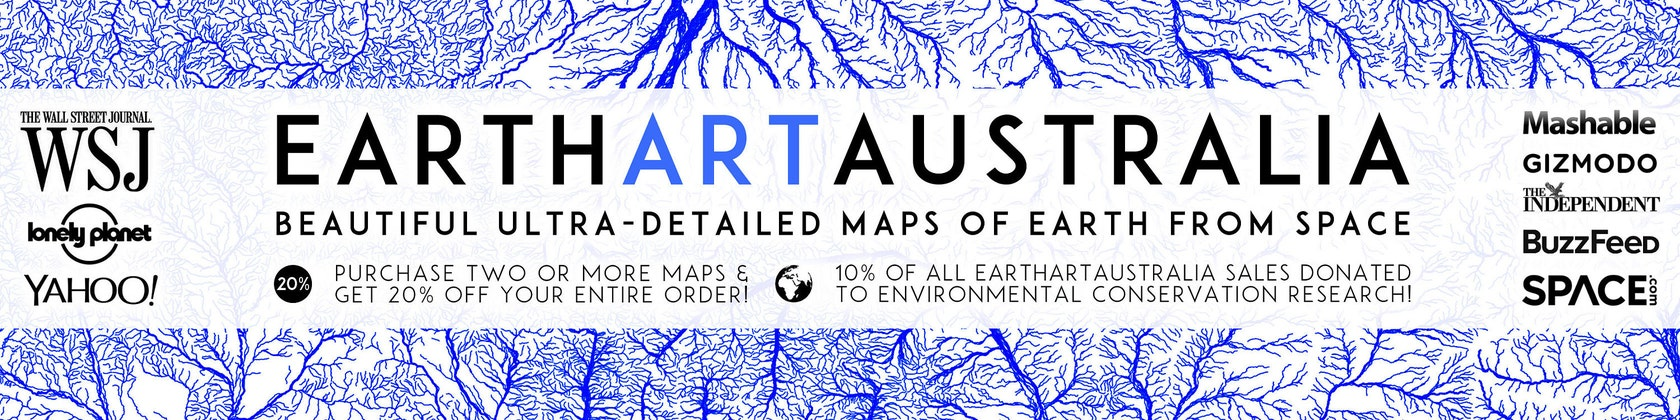 Beautiful ultra-detailed maps of Earth from by EarthArtAustralia on map of europe, map of pacific countries, map of asia, map of white countries, map of mexican countries, map of africa, map of middle east, map of portugal, map of spanish speaking countries, map of central america, map of spanish countries and capitals, map of australian countries, map of panama, map of costa rica, map of irish countries, map of international countries, south america without countries, map of european countries, map of north america,